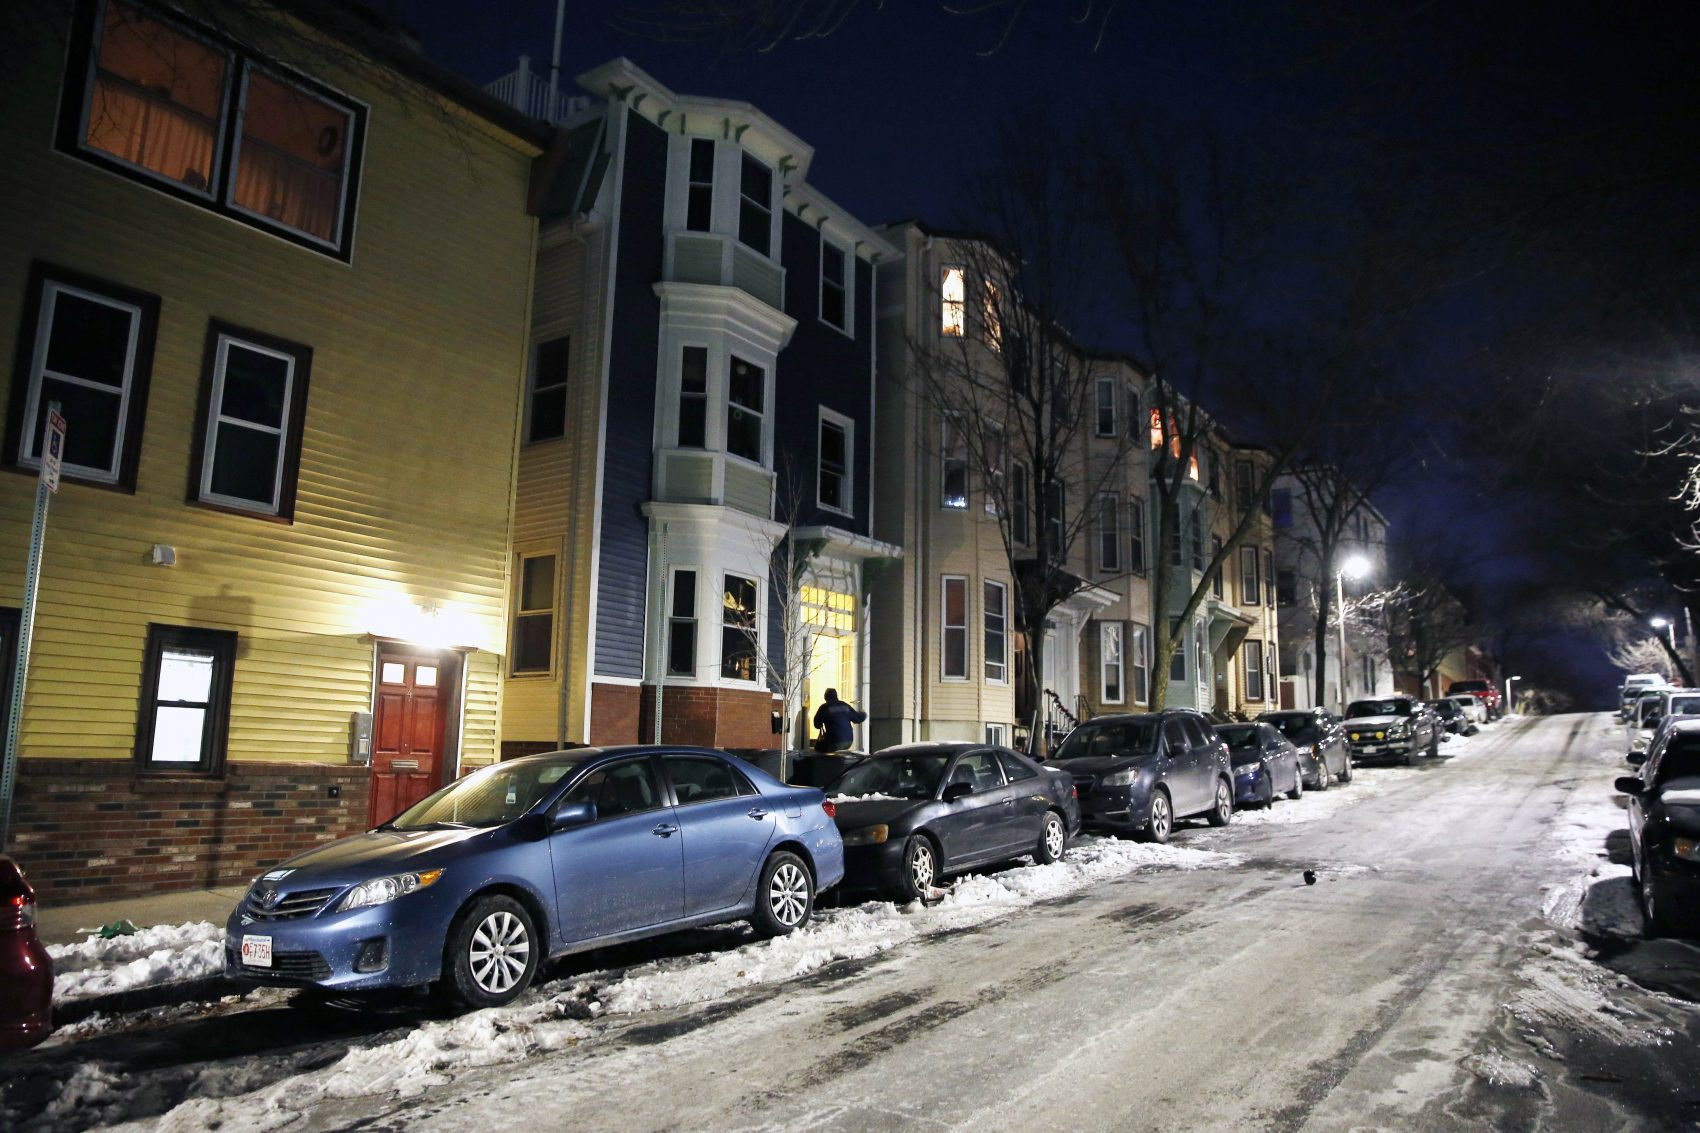 A person enters an apartment building on an icy street in the East Boston neighborhood of Boston as the temperature hovers in the single digits, Thursday, Dec. 28, 2017. The National Weather Service said there's the potential for record-breaking cold this week in New England. (AP Photo/Michael Dwyer)